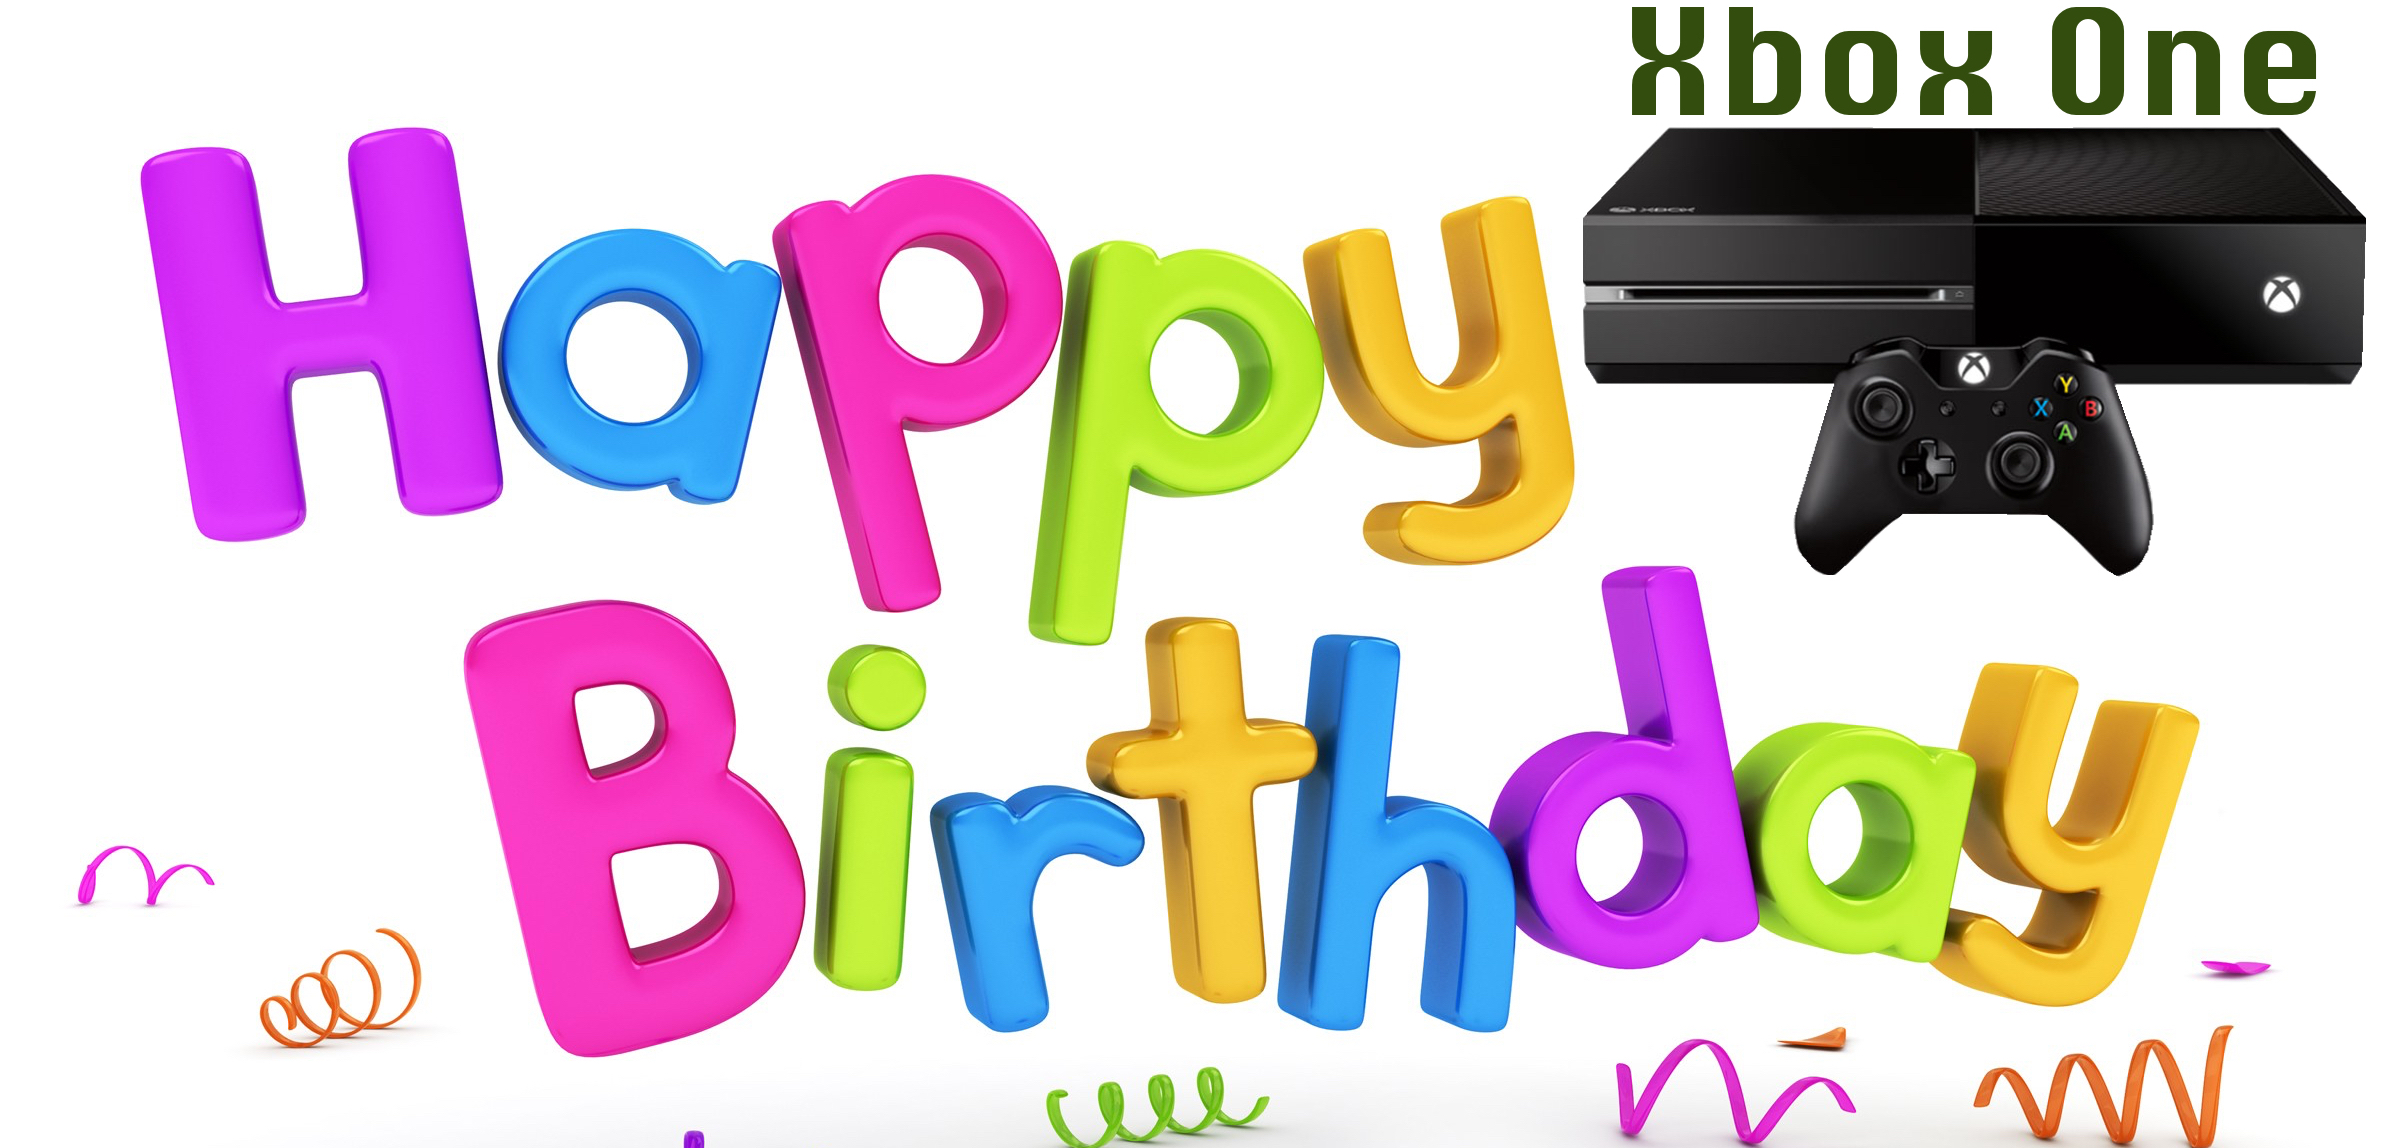 2400x1148 Happy Birthday Xbox One The Short Pause List Of The Top 10 Xbox